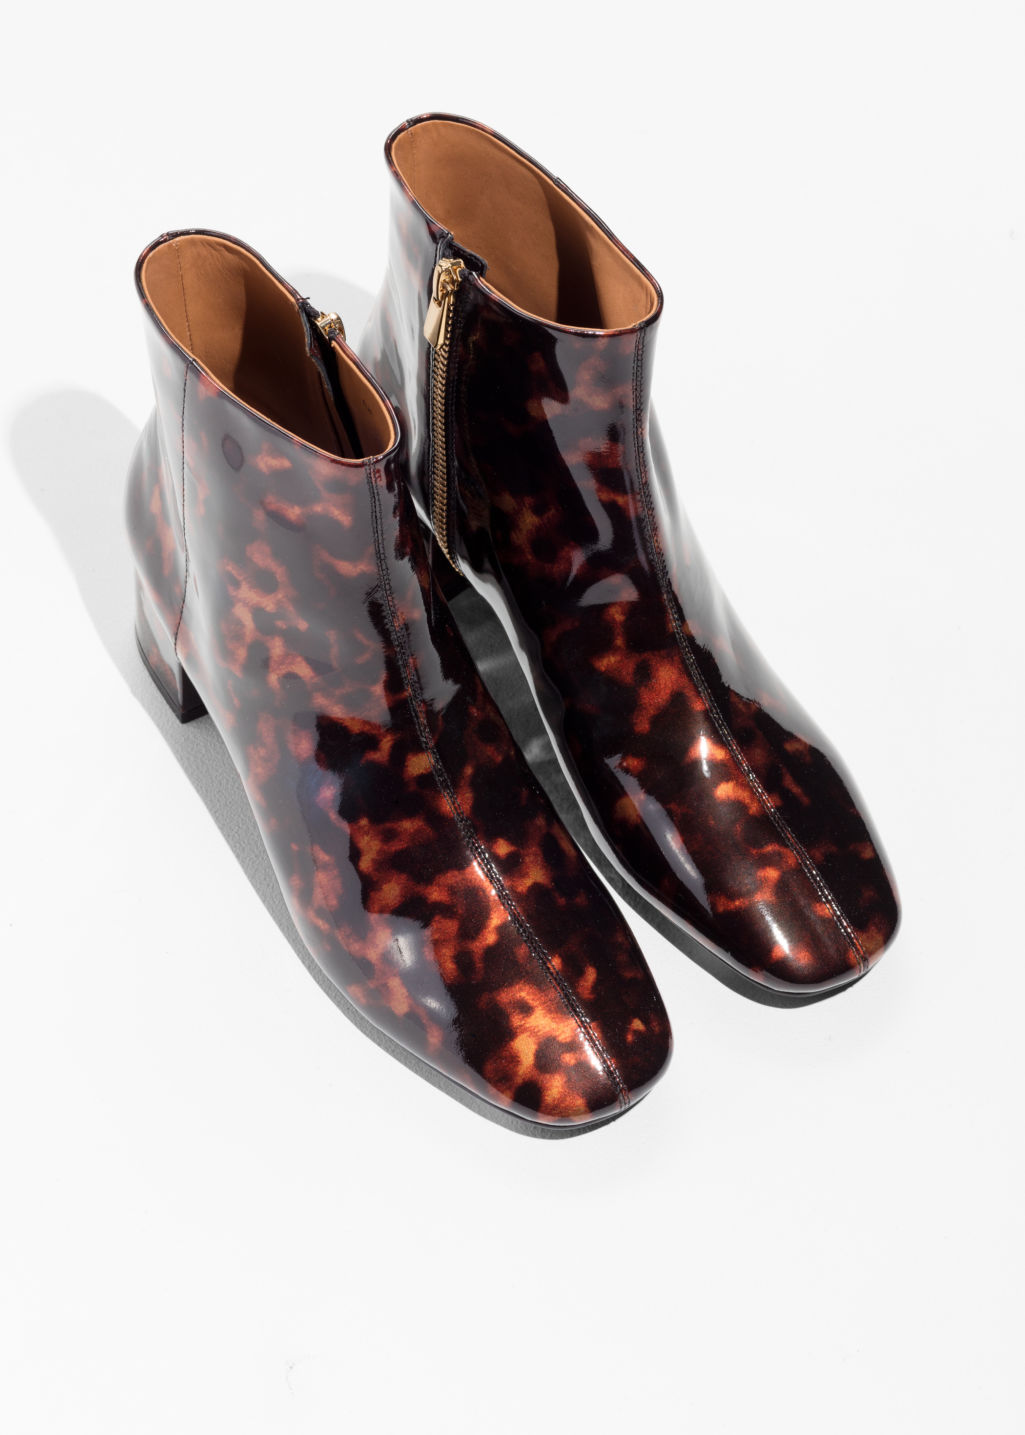 & OTHER STORIES Patent Leather Ankle Boots OGFsjpDL31